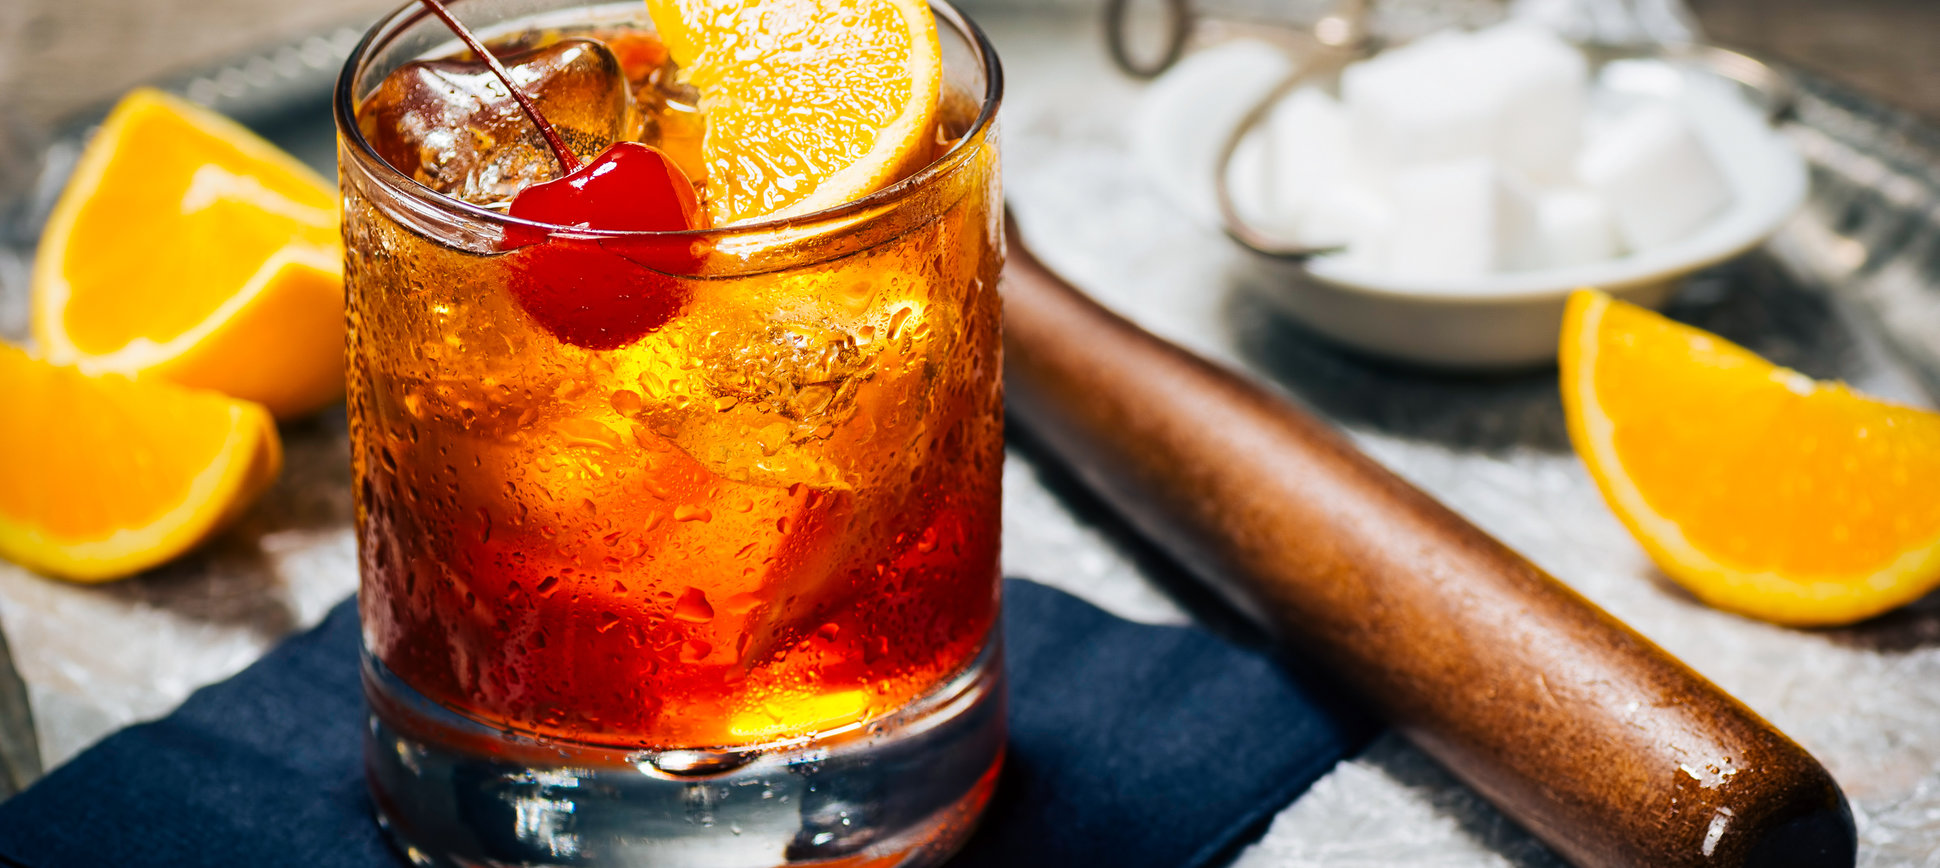 her-clothes-bourbon-old-fashioned-cocktail-non-nude